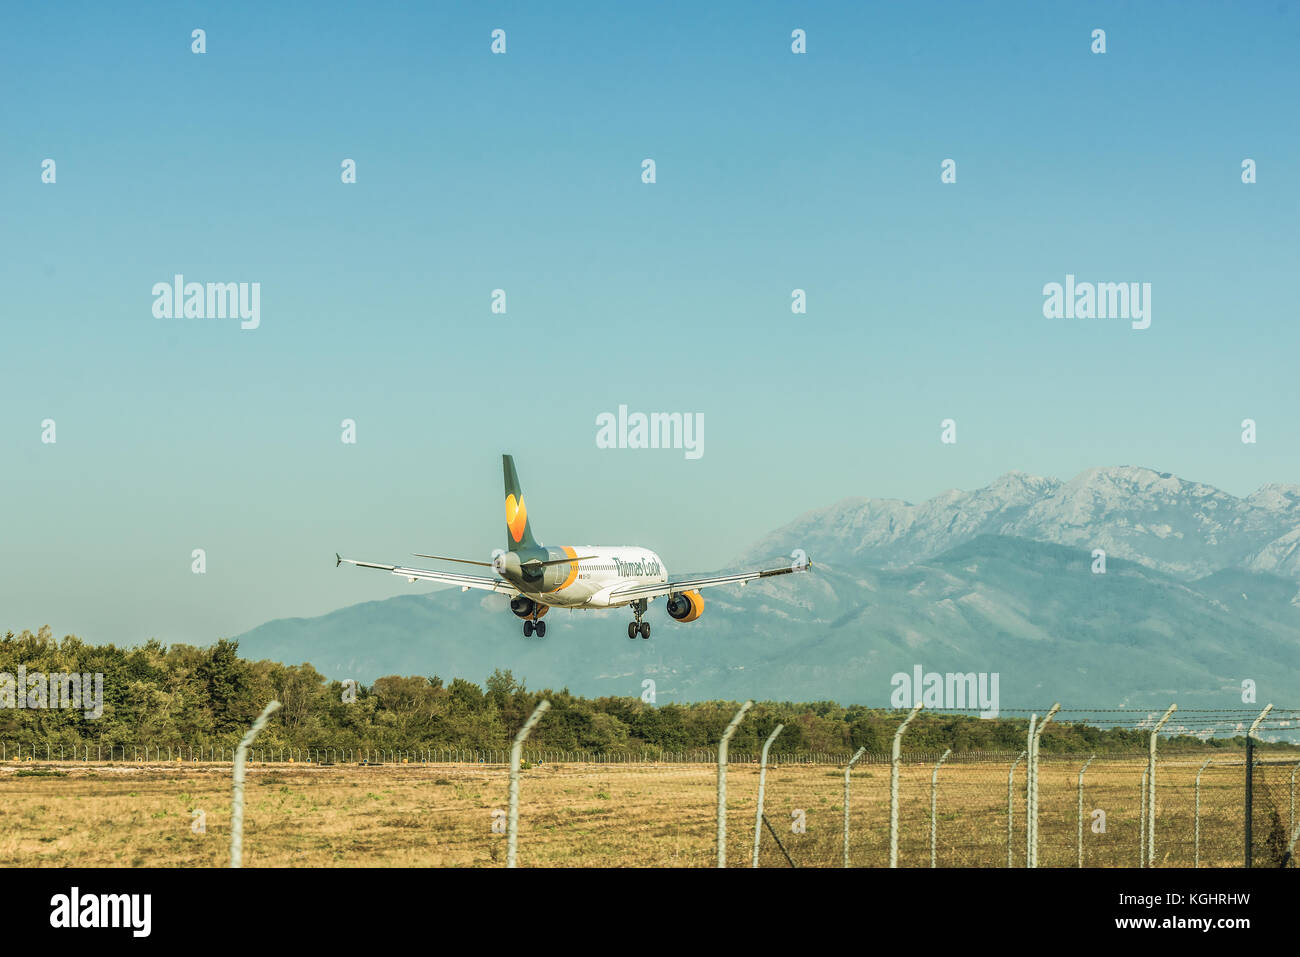 Montenegro, Tivat - August 24, 2017: Passenger plane lands at Tivat airport in Montenegro. - Stock Image